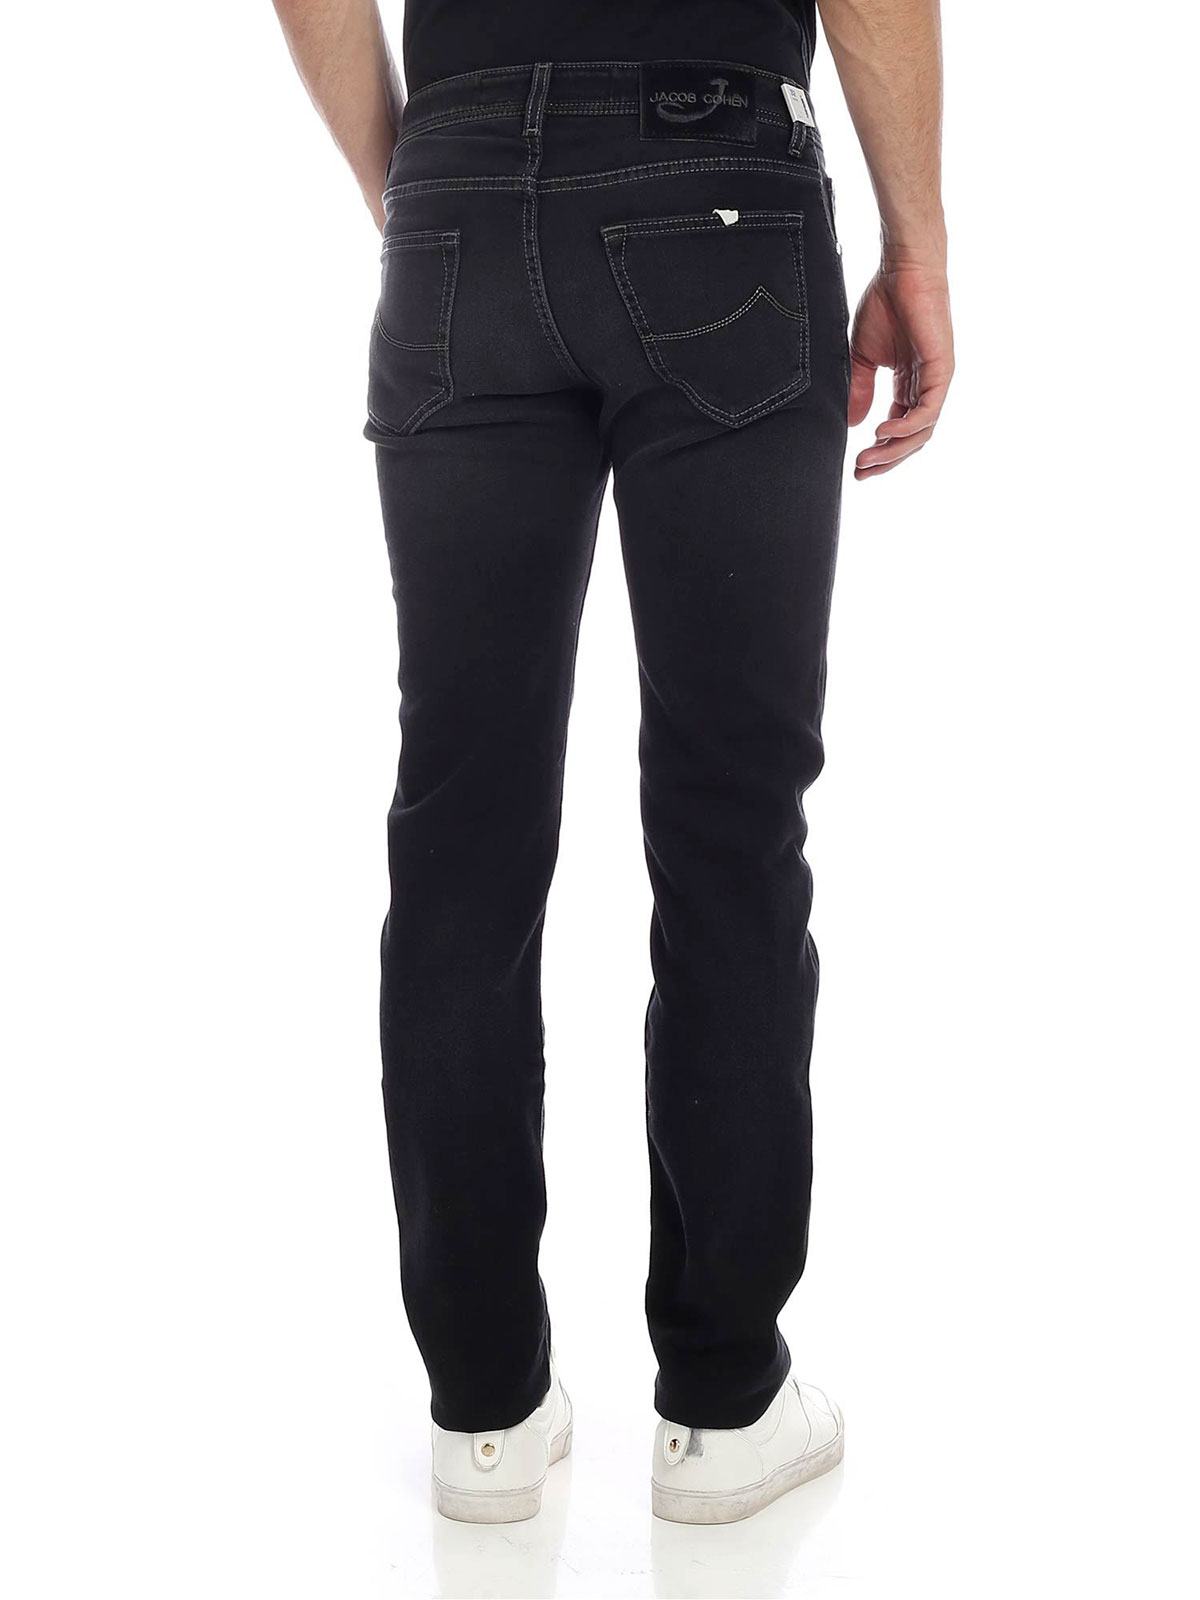 Picture of JACOB COHEN | Men's Style J622 Stretch Jeans